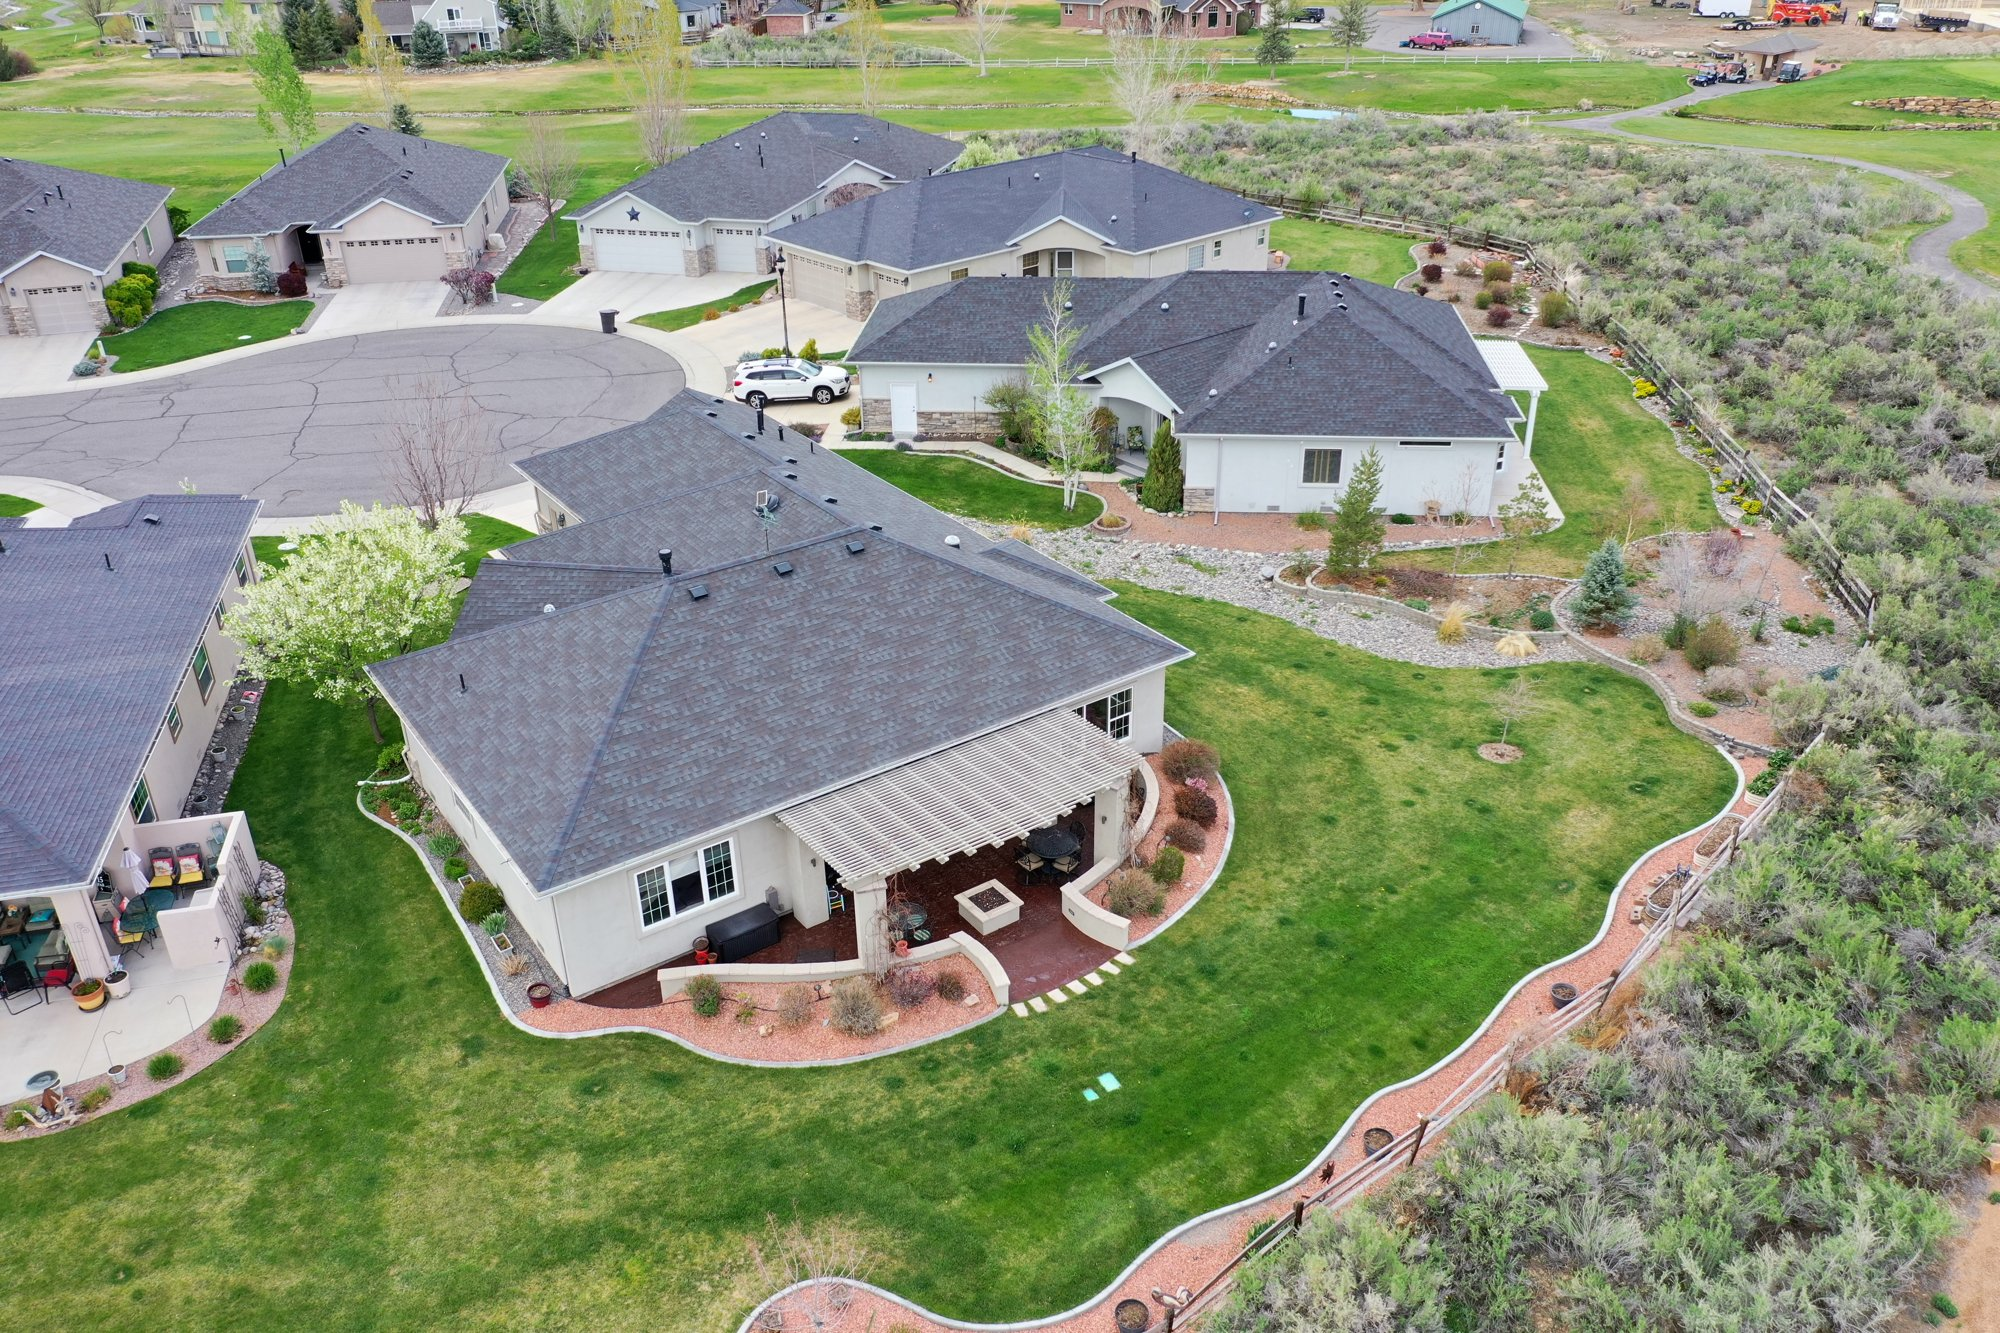 Aerial View of Back of the Property - 640 Badger Court Montrose, CO 81403 - Atha Team Real Estate Agents